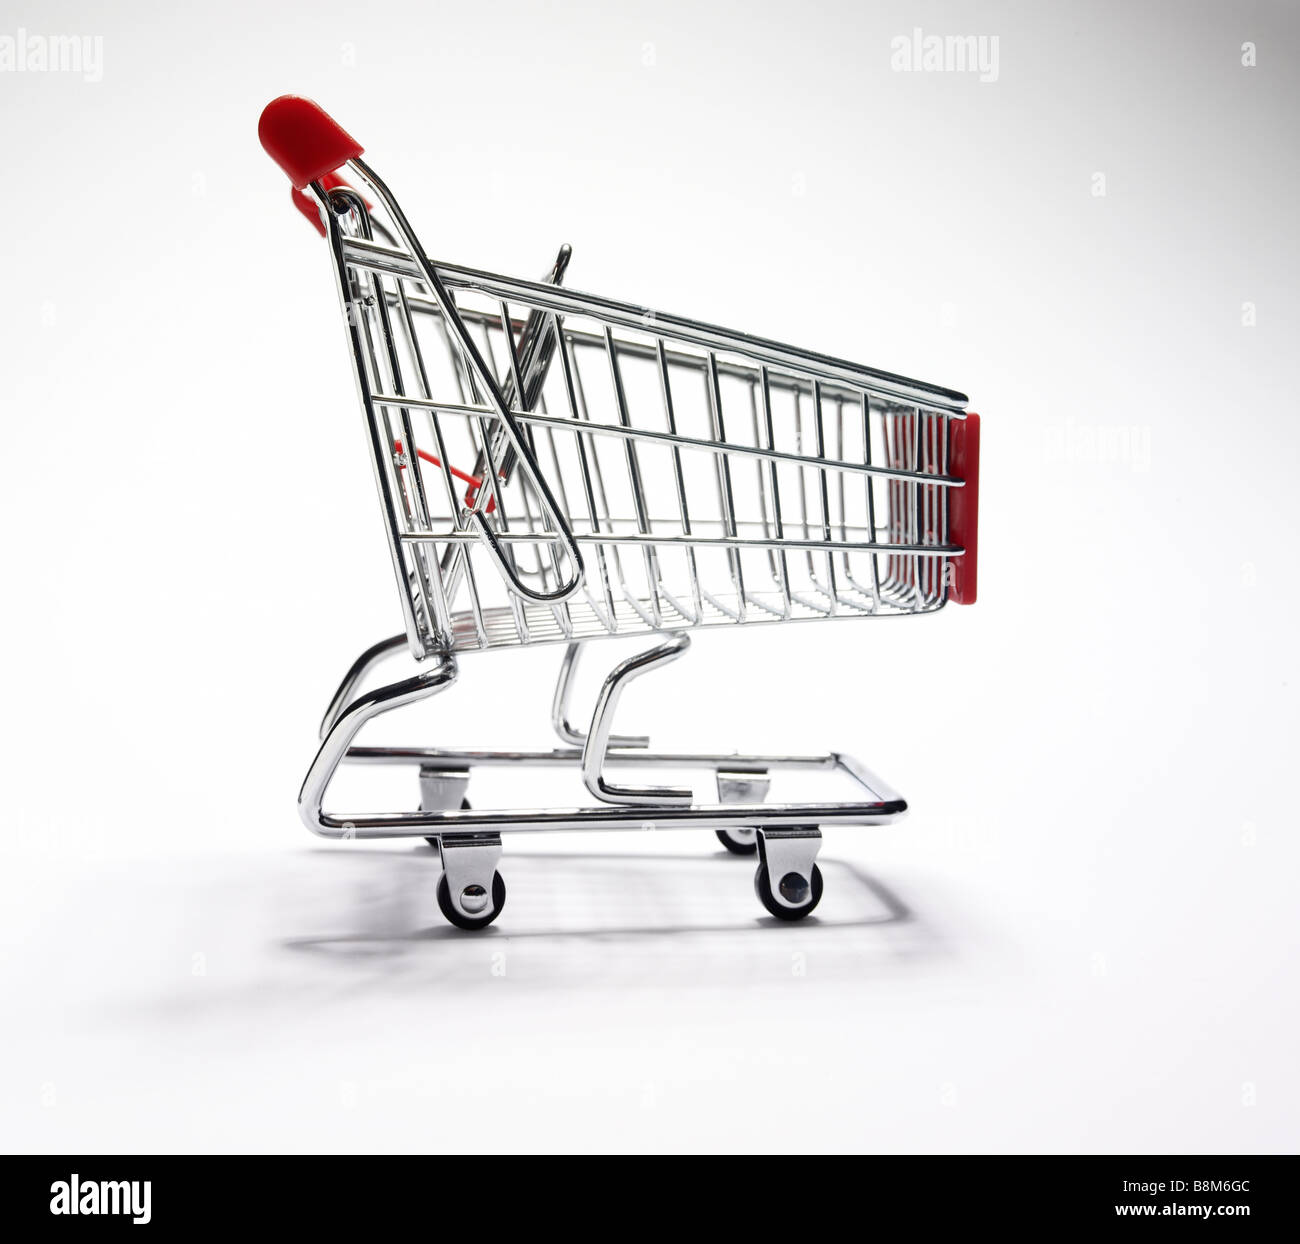 miniature shopping trolley - Stock Image